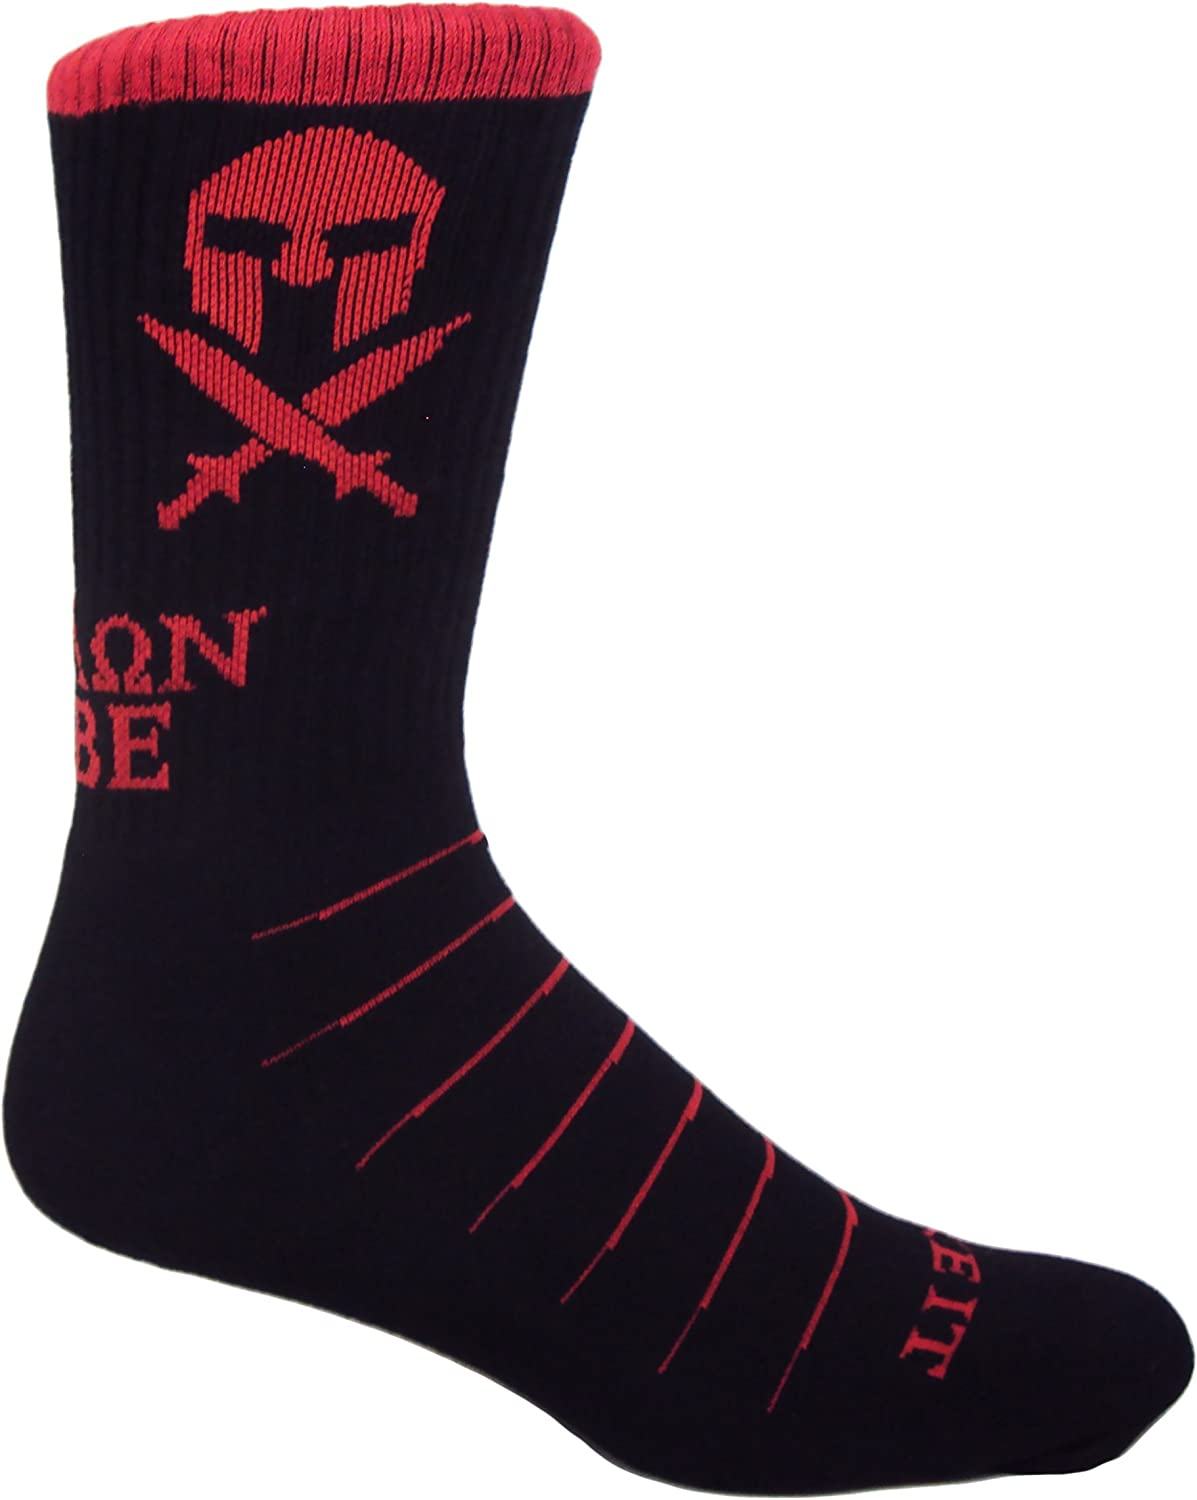 MOXY Socks Black and Red Molon Labe Spartan Performance Crew Socks